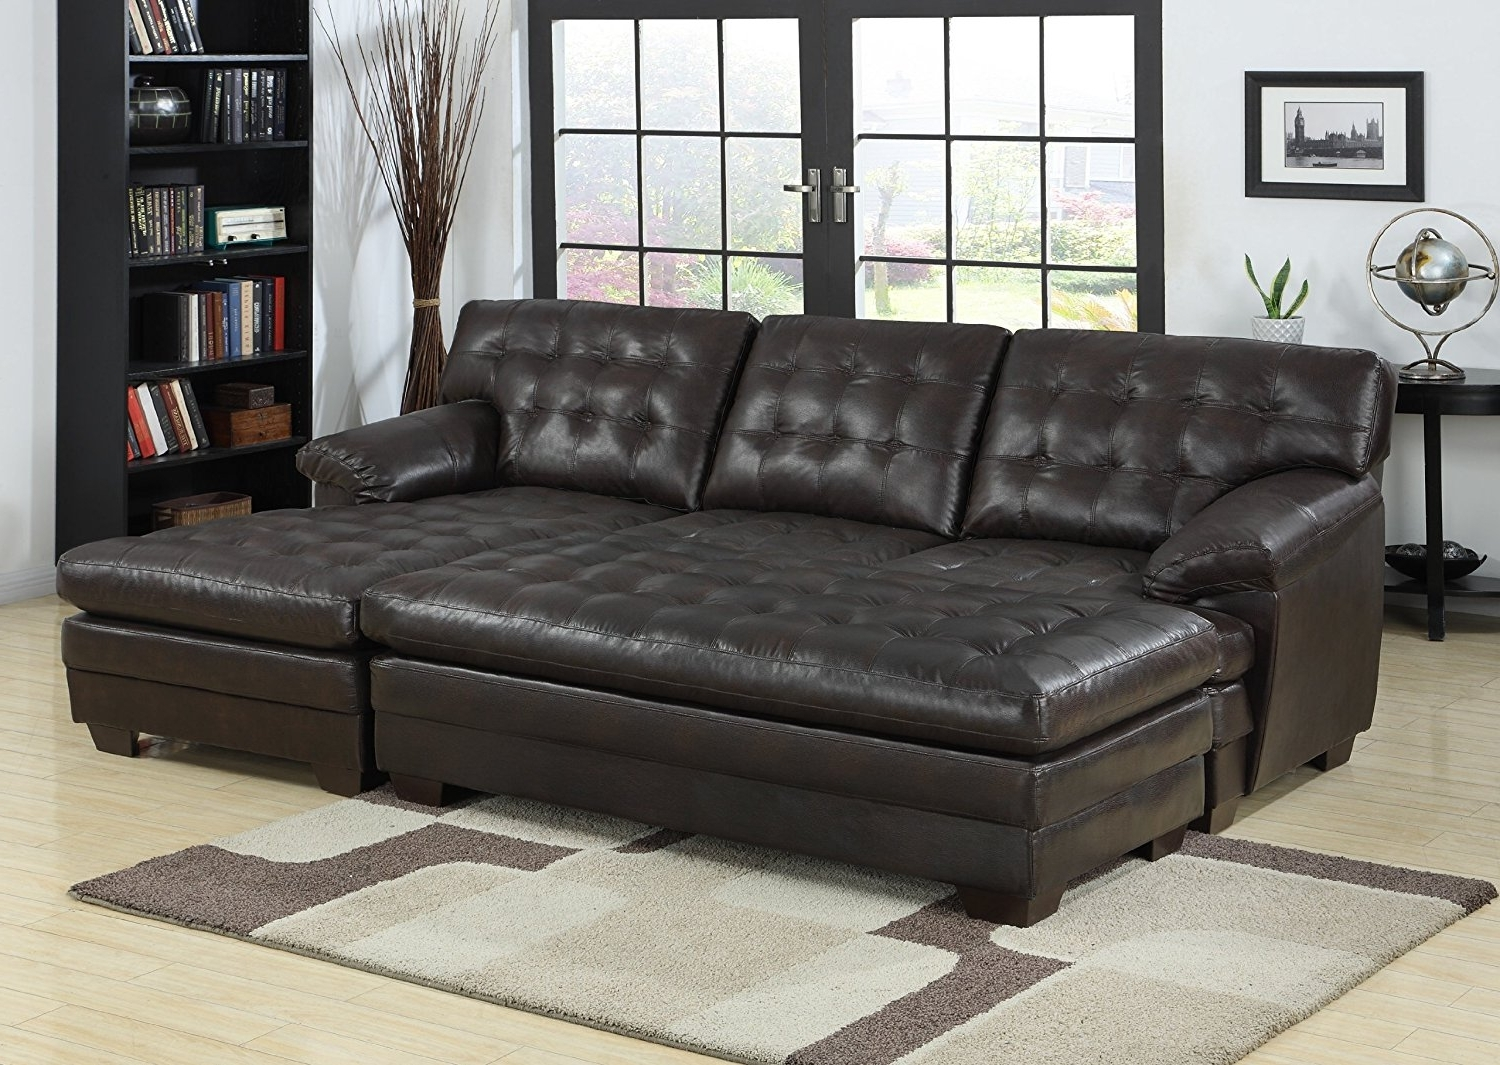 2018 Sectional Sofas With 2 Chaises Within Amazon: Homelegance 9739 Channel Tufted 2 Piece Sectional Sofa (View 1 of 15)